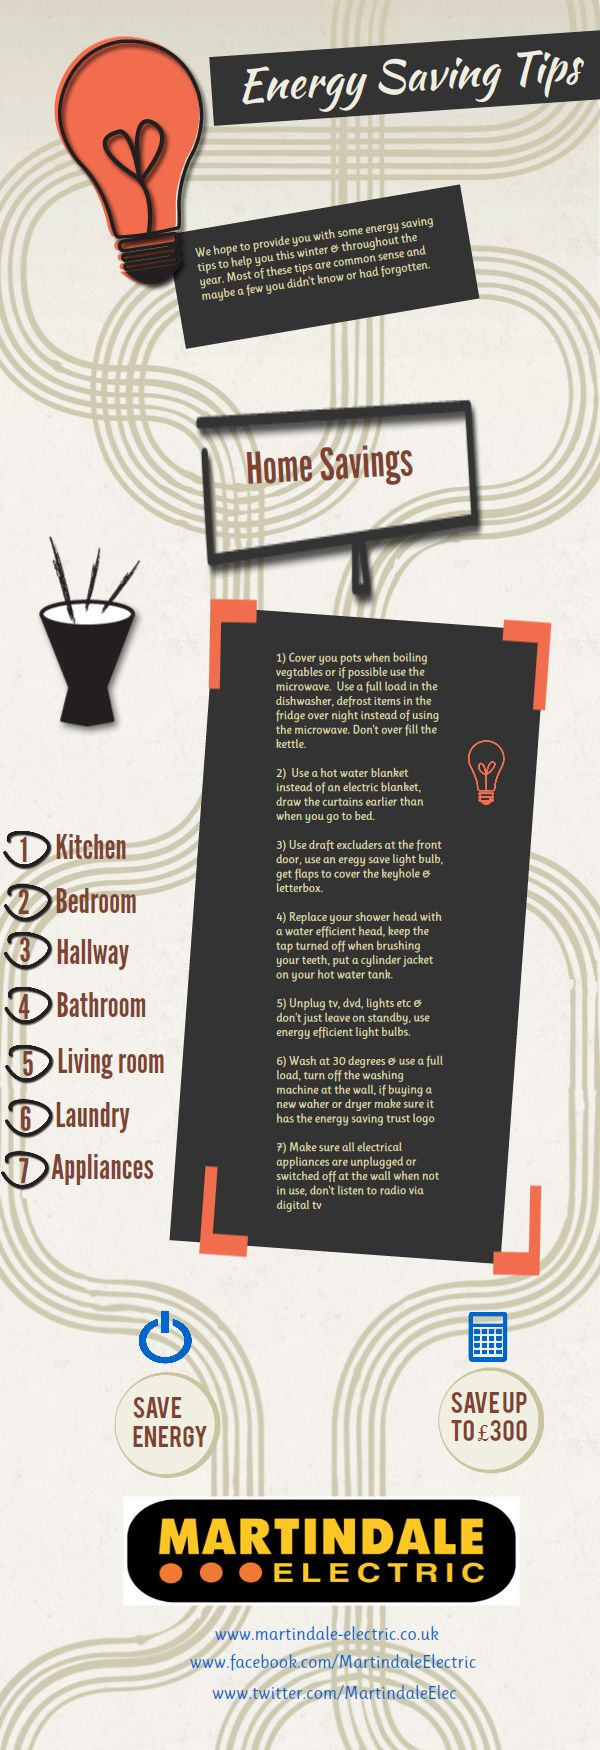 Take a look at some energy saving tips!